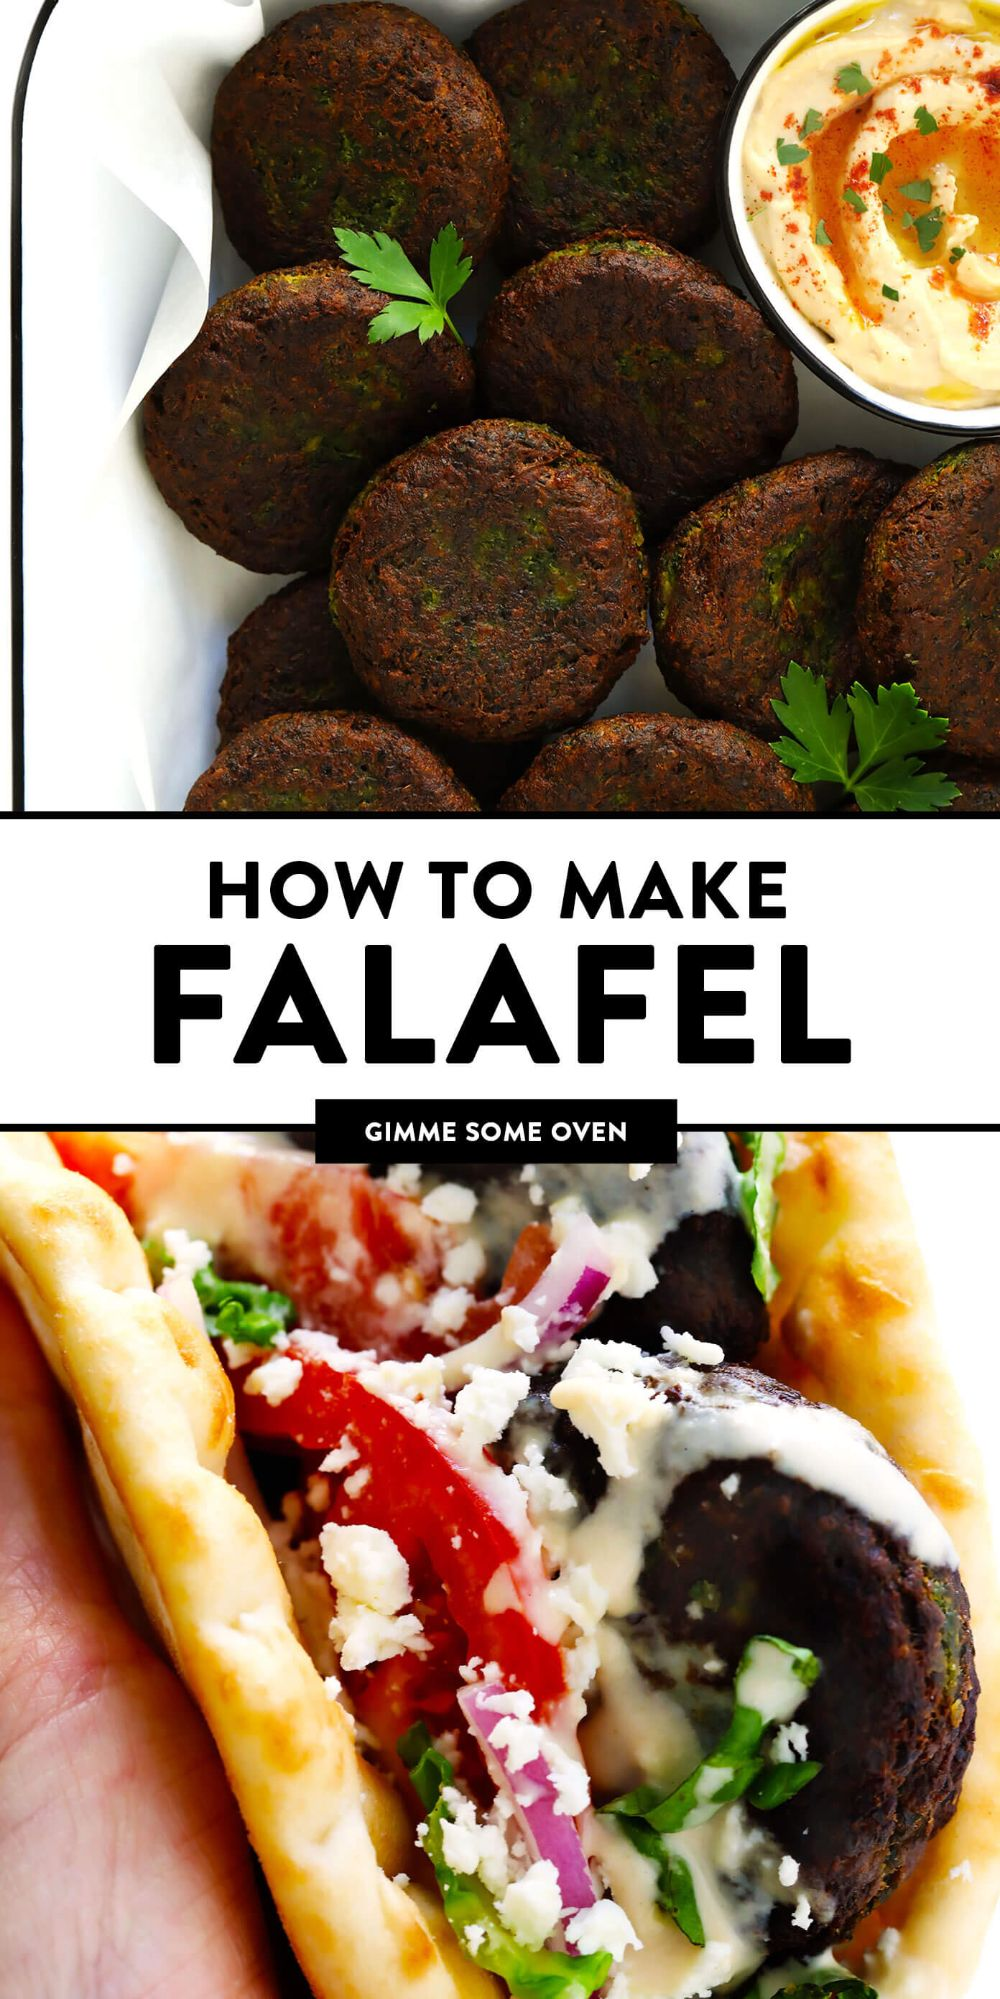 Learn how to make falafel with this easy homemade falafel recipe! It's bursting with zesty fresh fresh flavors, lightly pan-fried (instead of deep-fried), and perfect for falafel wraps, salads, sandwiches and more. Bonus, it's also naturally vegan and gluten-free. | gimmesomeoven.com #falafel #wrap #vegetarian #vegan #glutenfree #healthy #dinner #freezermeals